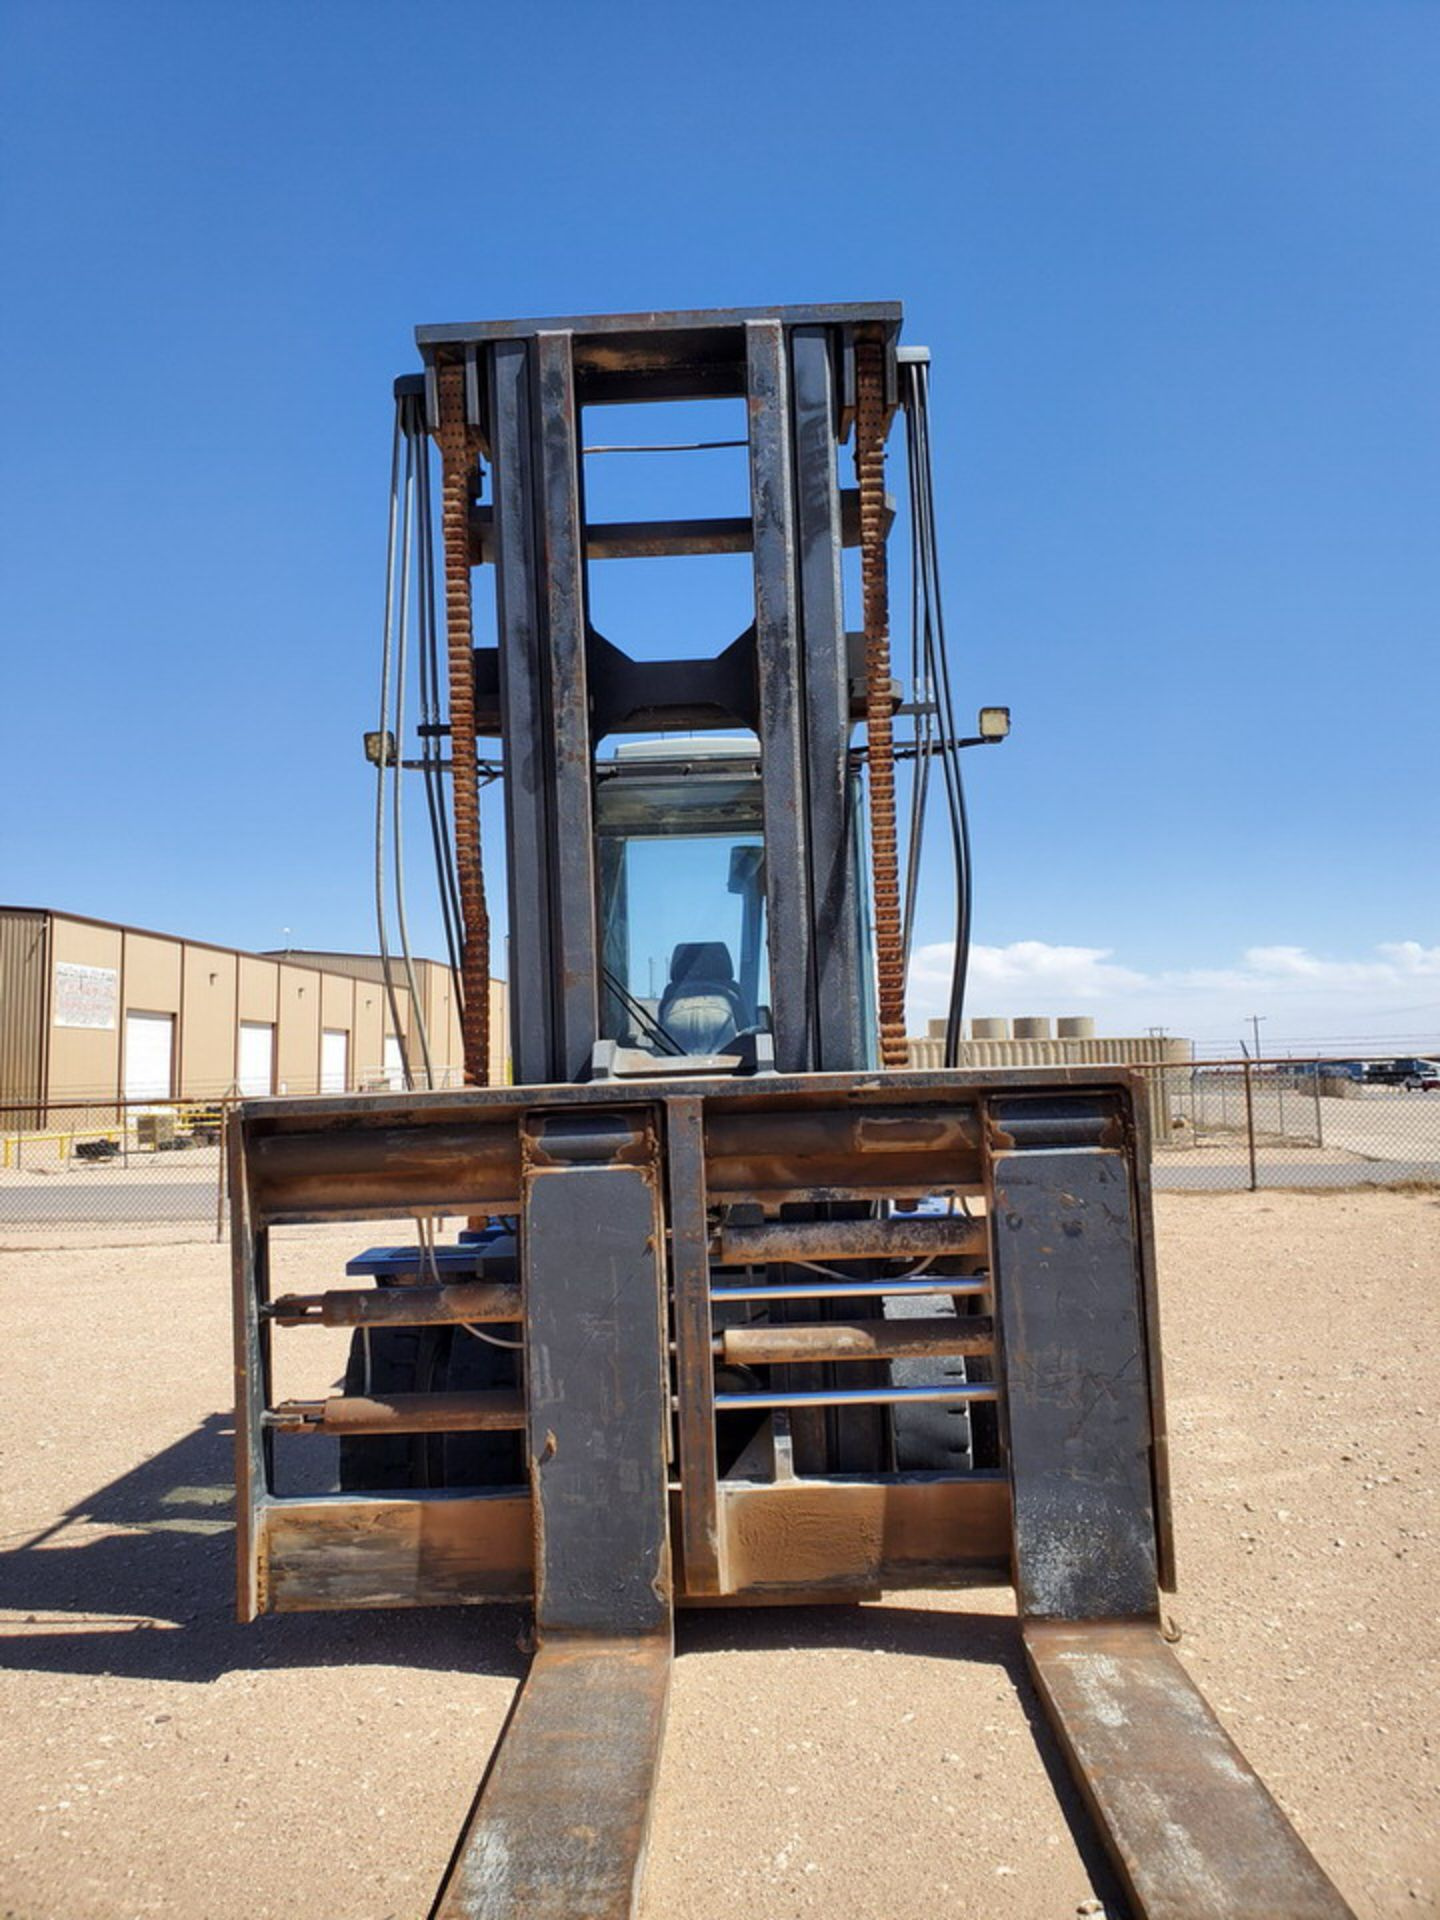 2012 Brute Lift BT40-48 Forklift 40H Cap., Engine Hrs: 3,389.3 - Image 10 of 17